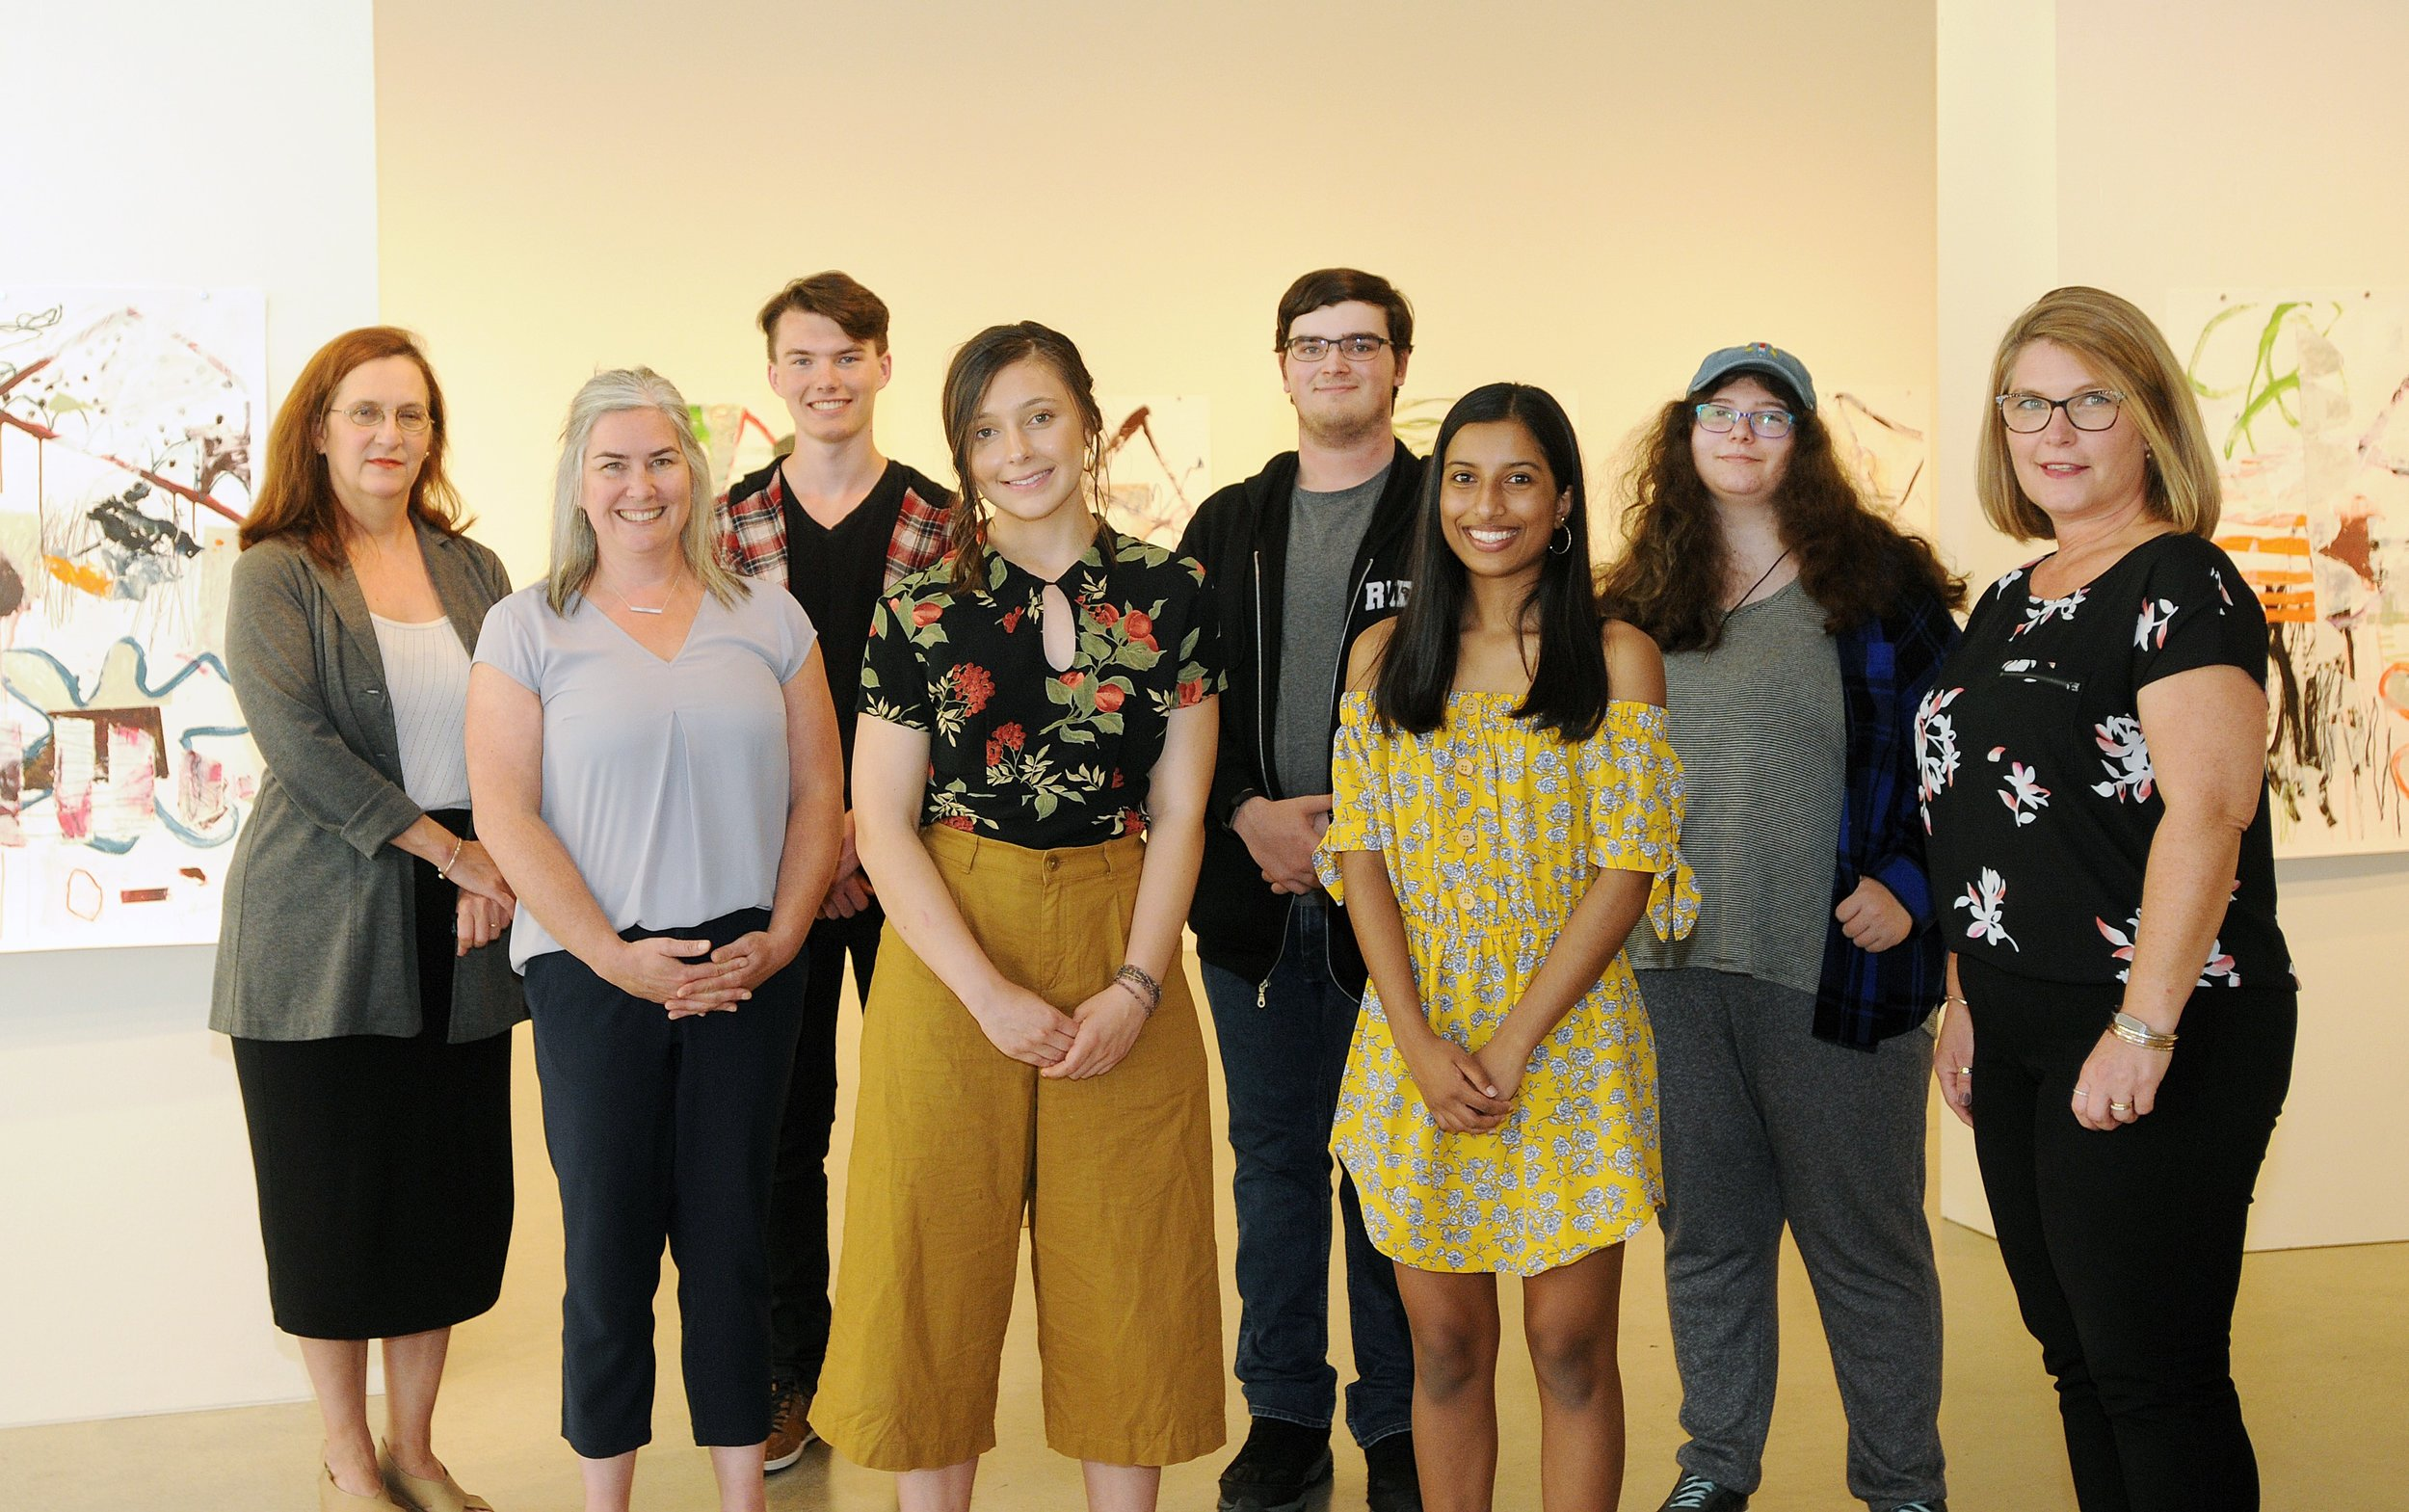 PHOTO From left to right : Curtis Pendleton (Executive Director, The ACT Arts Centre), Kim Dunmore (Board Secretary, Scholarship Committee member), Alexander Guraliuk (Recipient, Literary Arts), Ava Buckley (Recipient, Visual & Media Arts), Logan Walker (Recipient, Visual & Media Arts), Aisha Wewala (Recipient, Theatre), Sophie Lannon (Recipient, Visual & Media Arts), Laura Butler (Board Vice President, Scholarship Committee member)